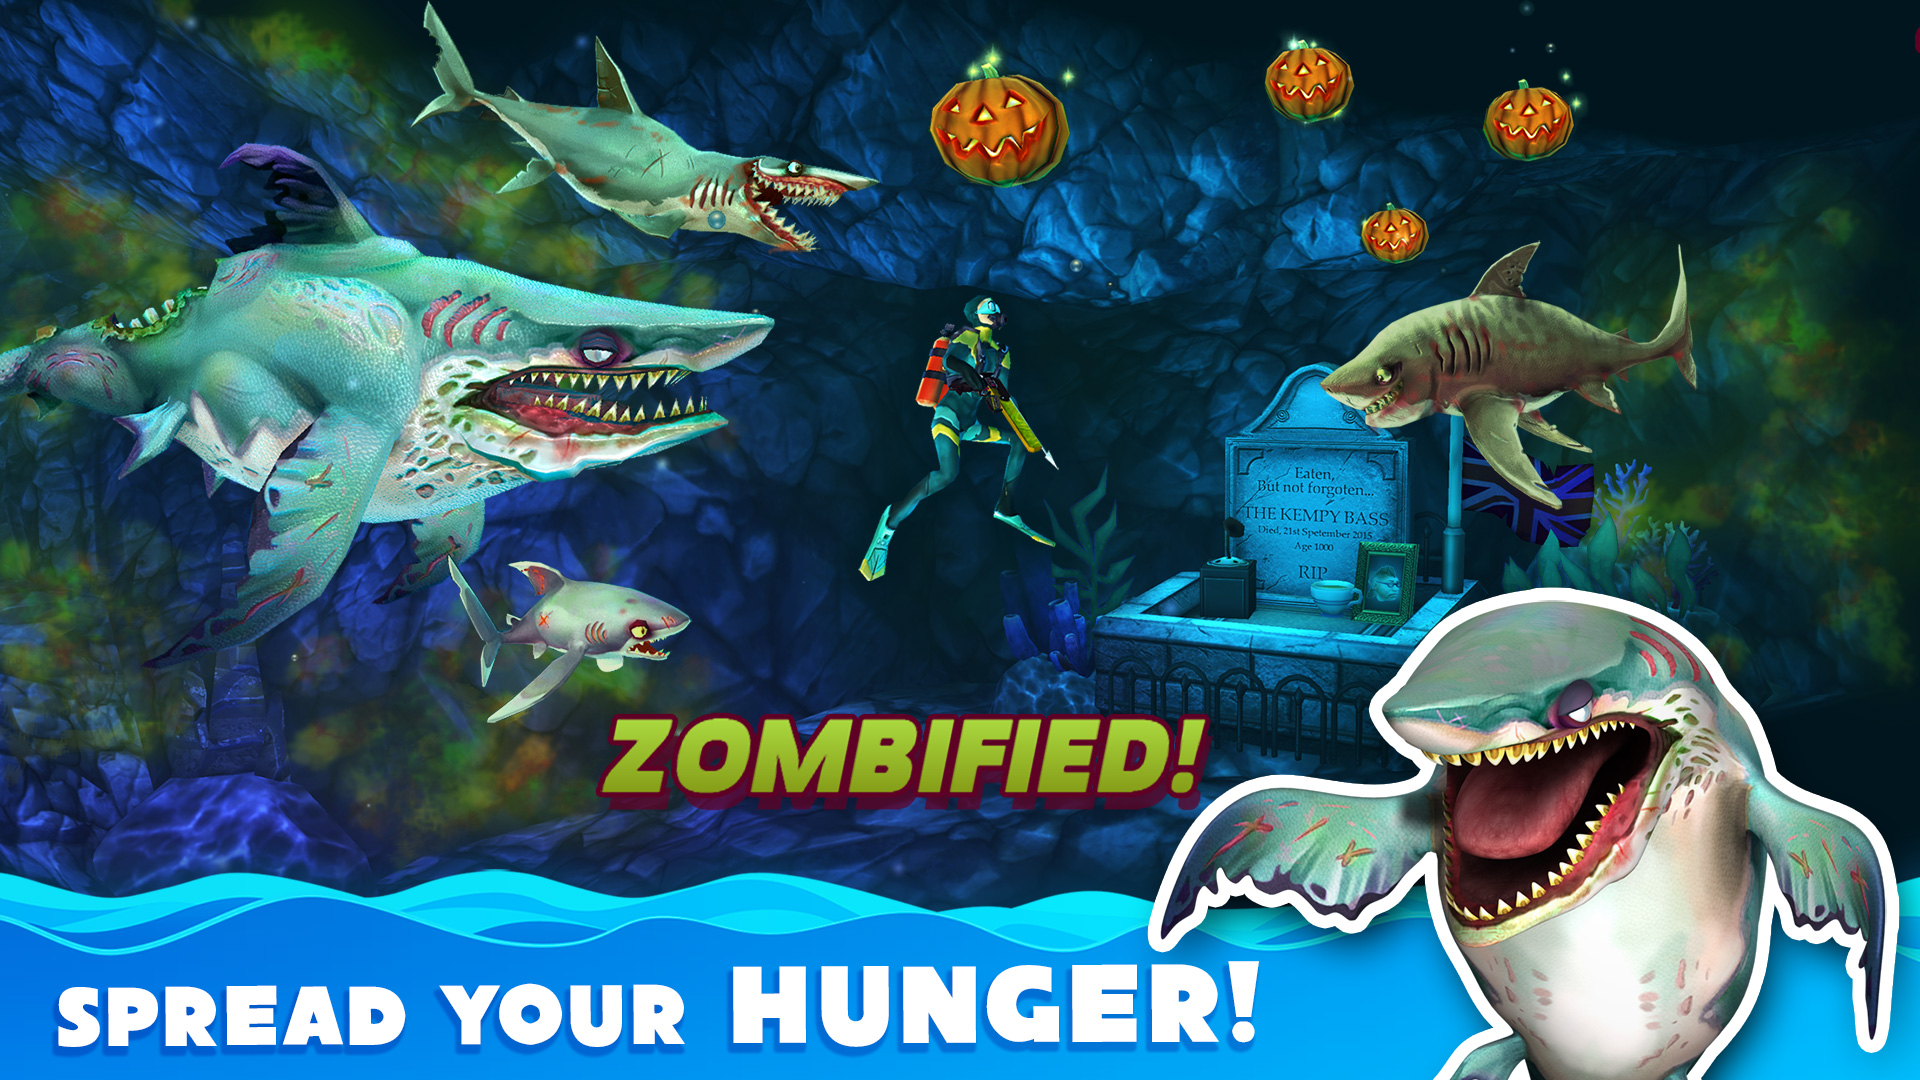 download hungry shark world mod apk apptoko